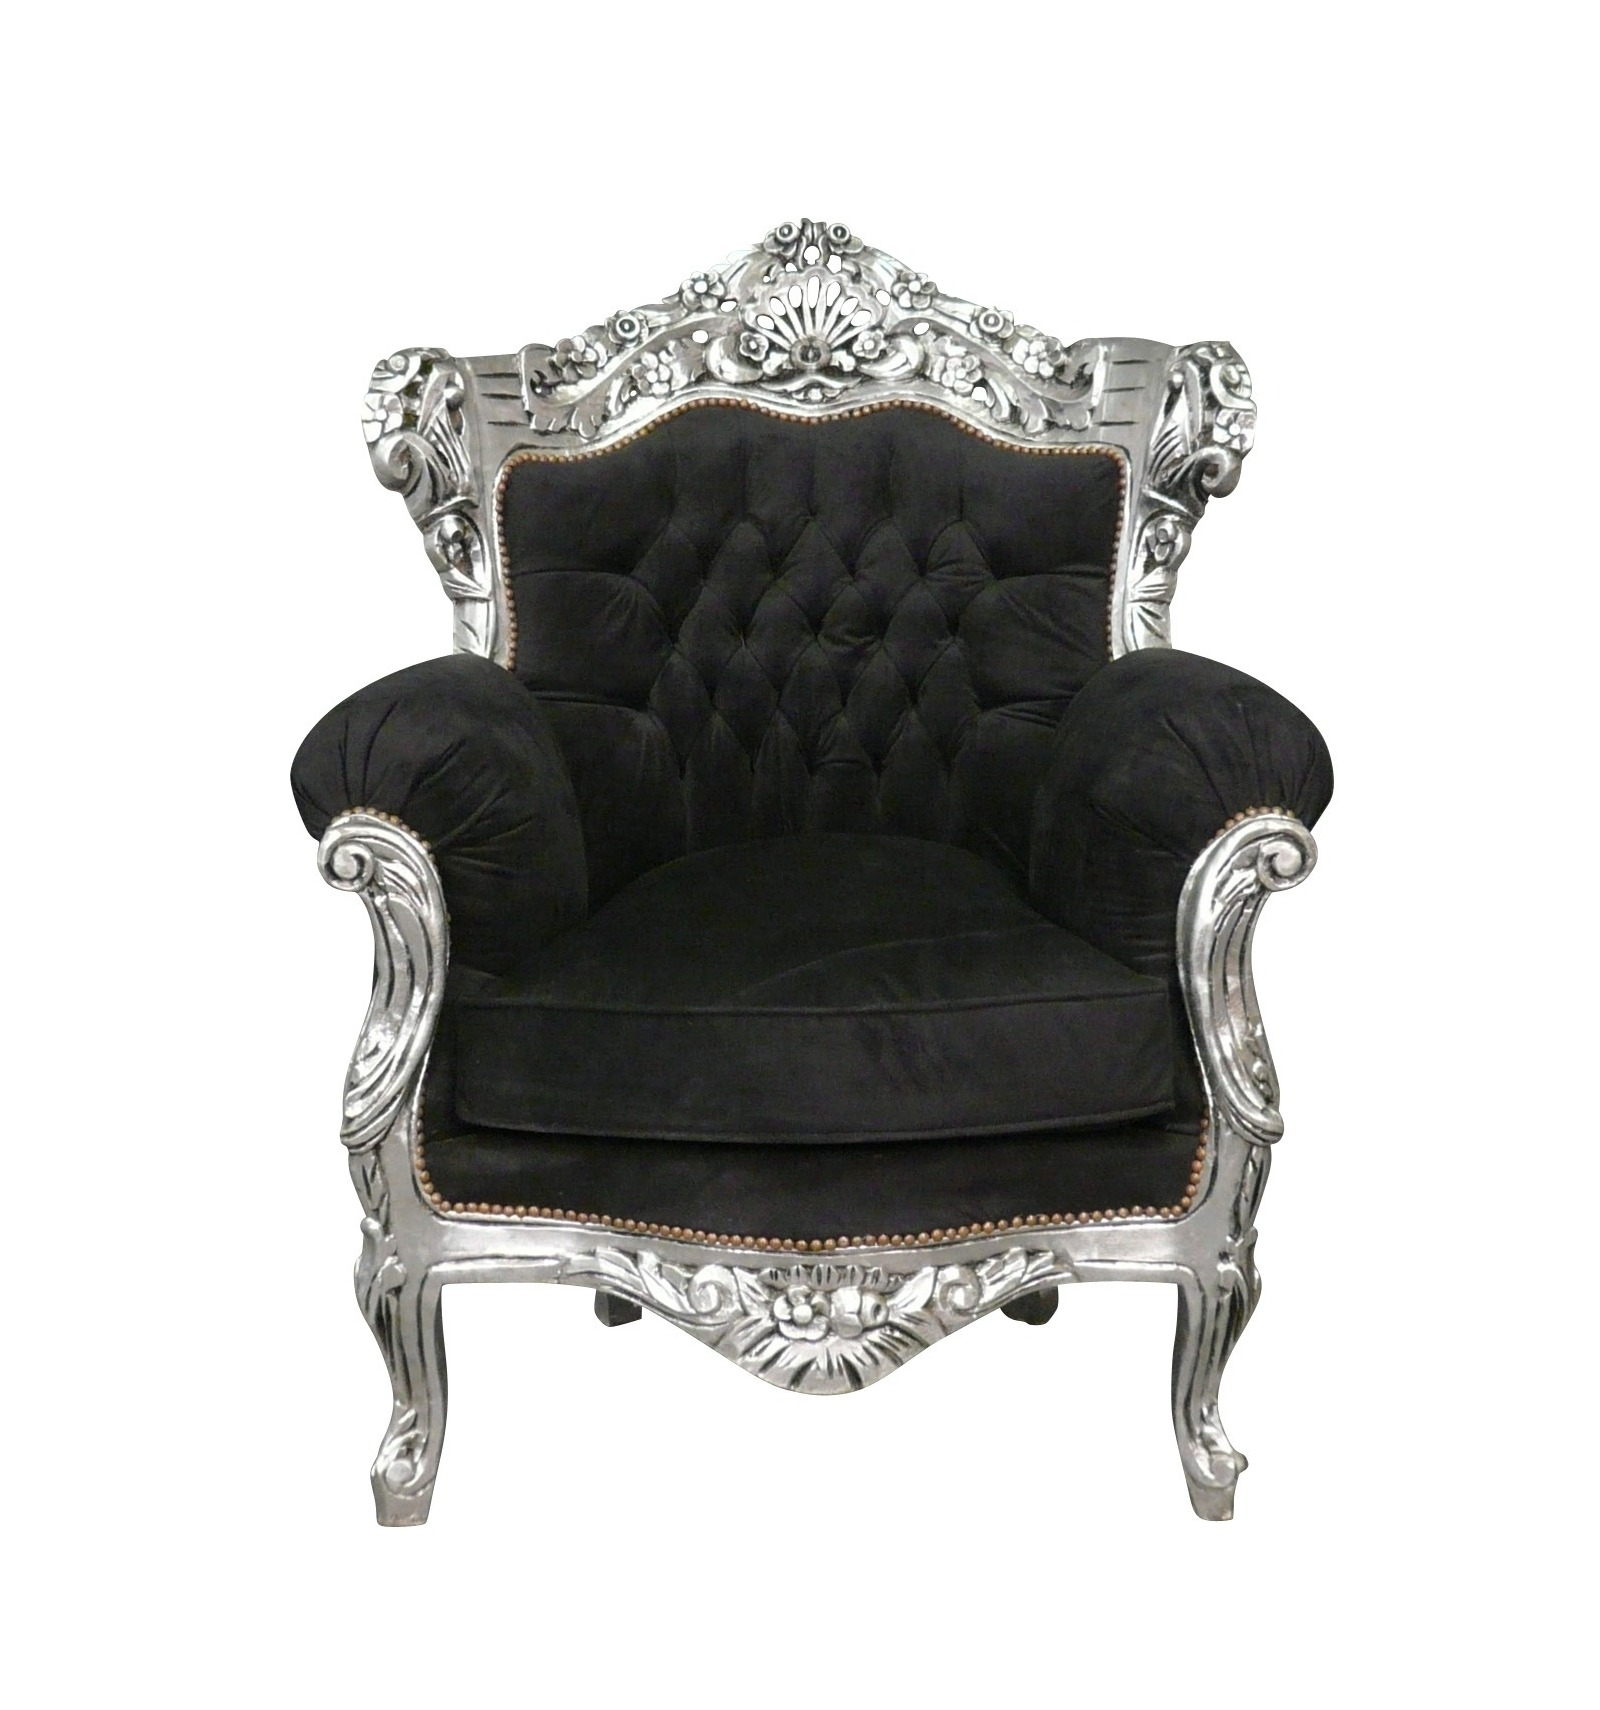 Armchair Baroque Black Velvet And Wood Silver Furniture